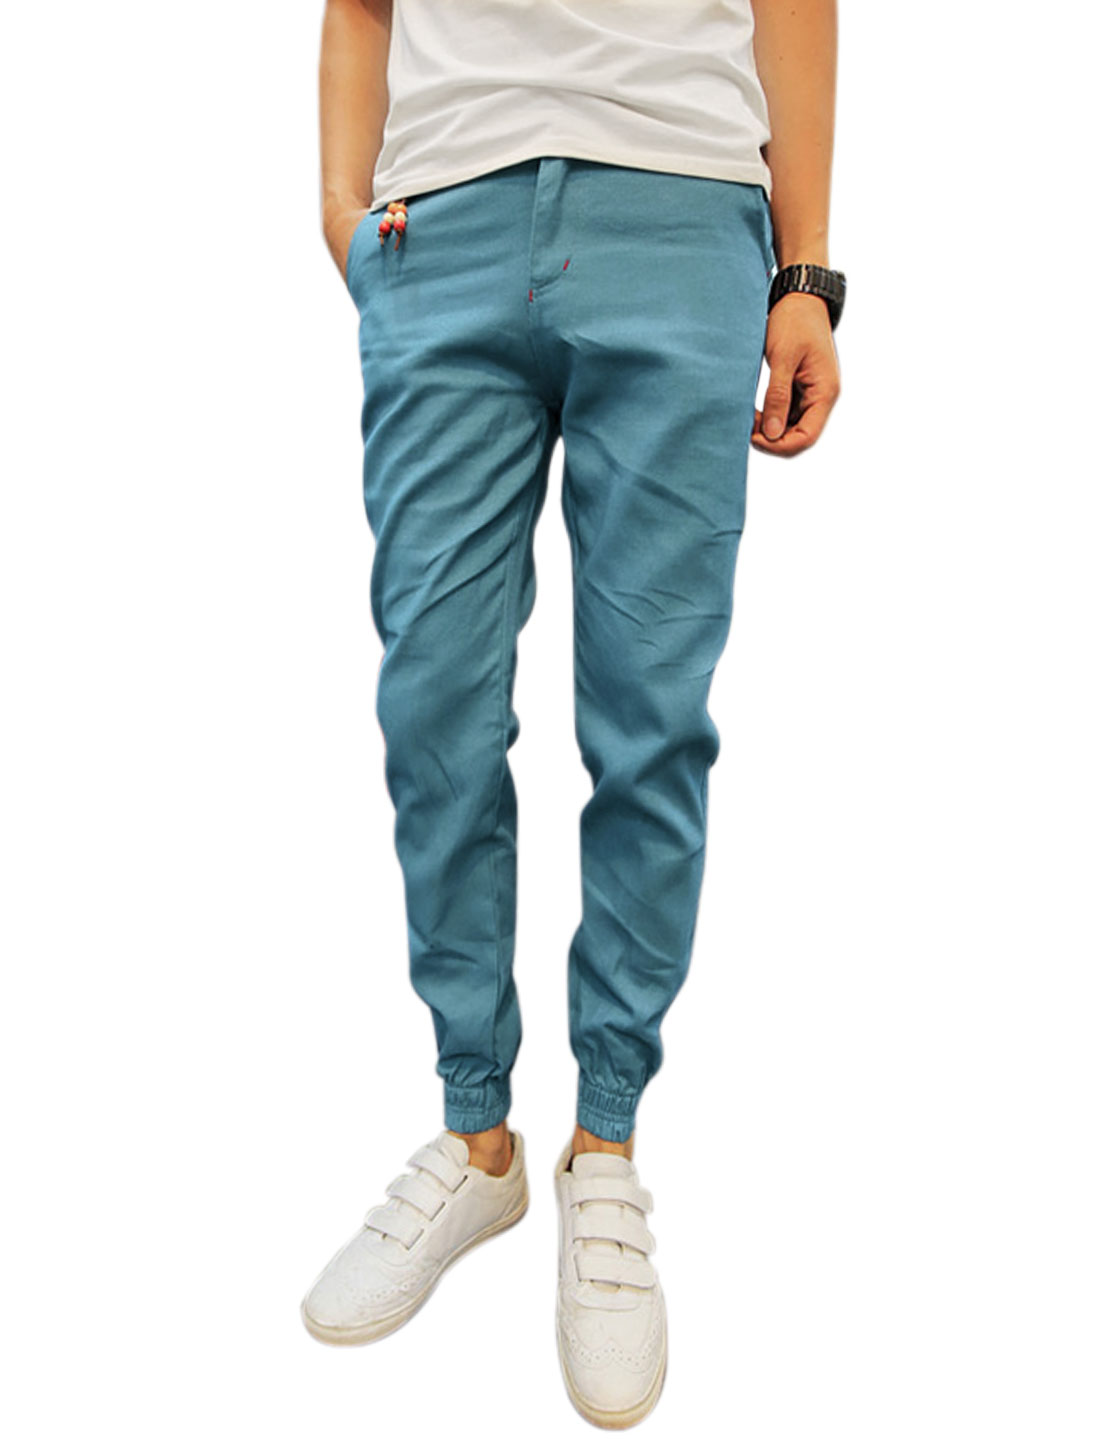 Men Mid Rise Zip Fly Belt Loop Pockets Pants Sky Blue W30